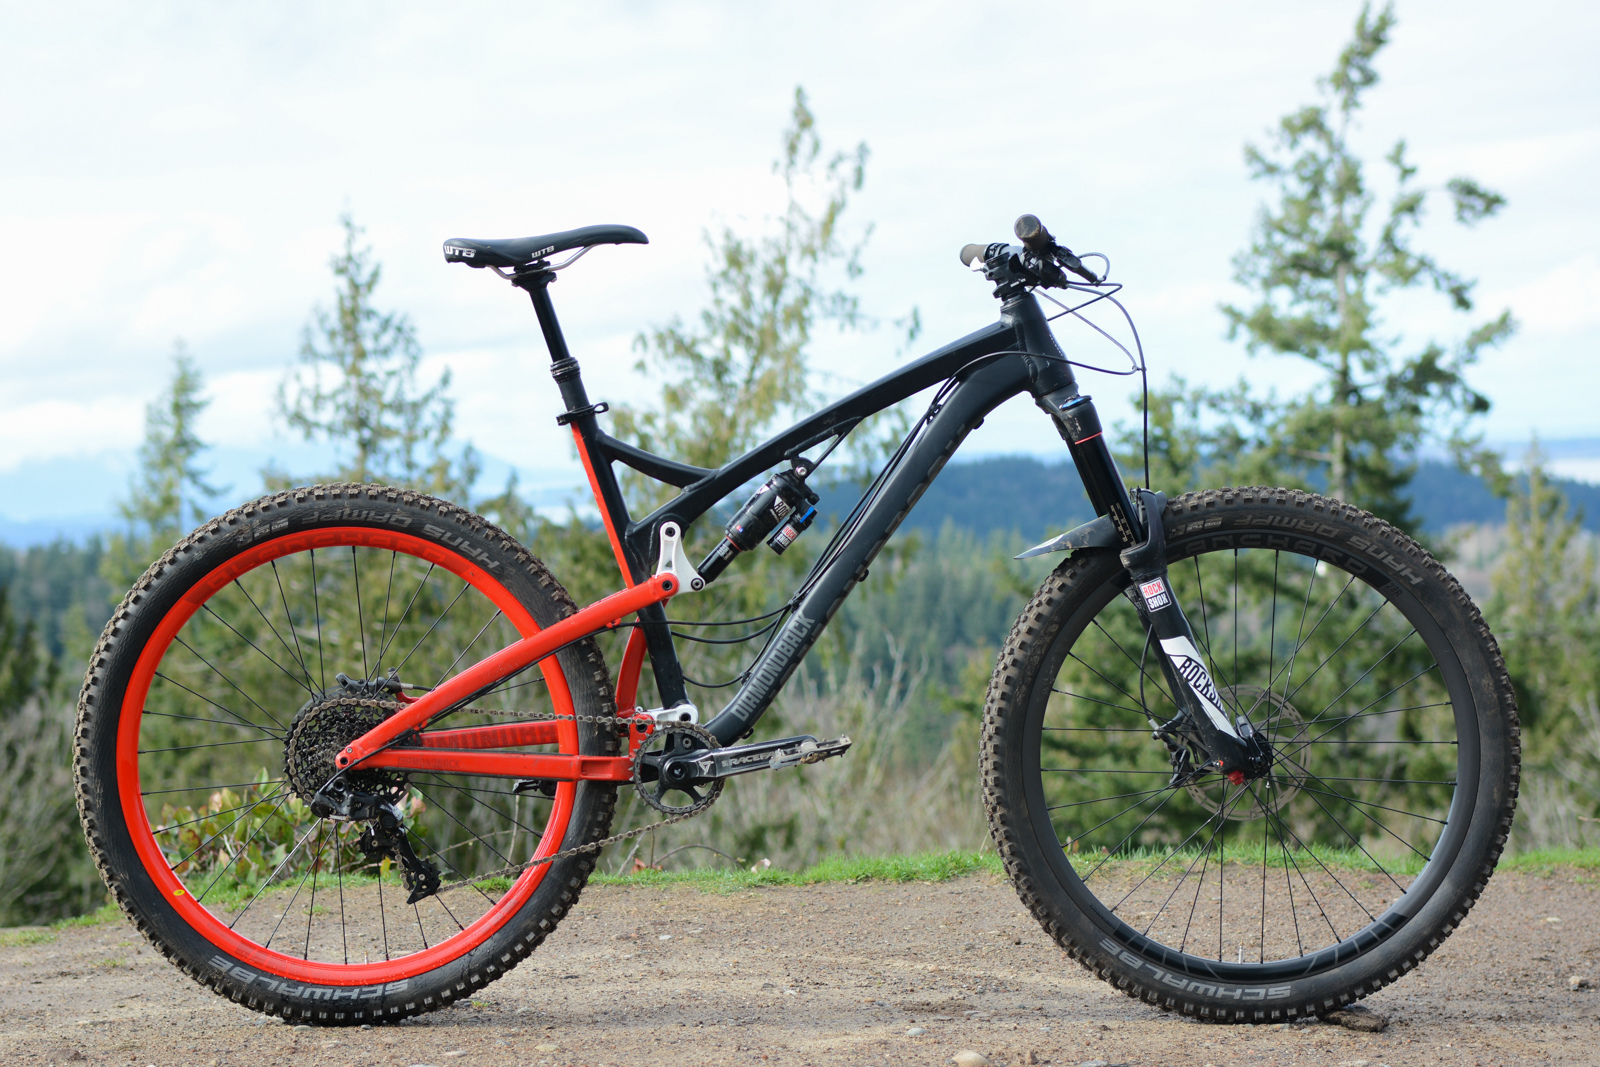 c0459b54fef Diamondback Release 3 - Review - Pinkbike